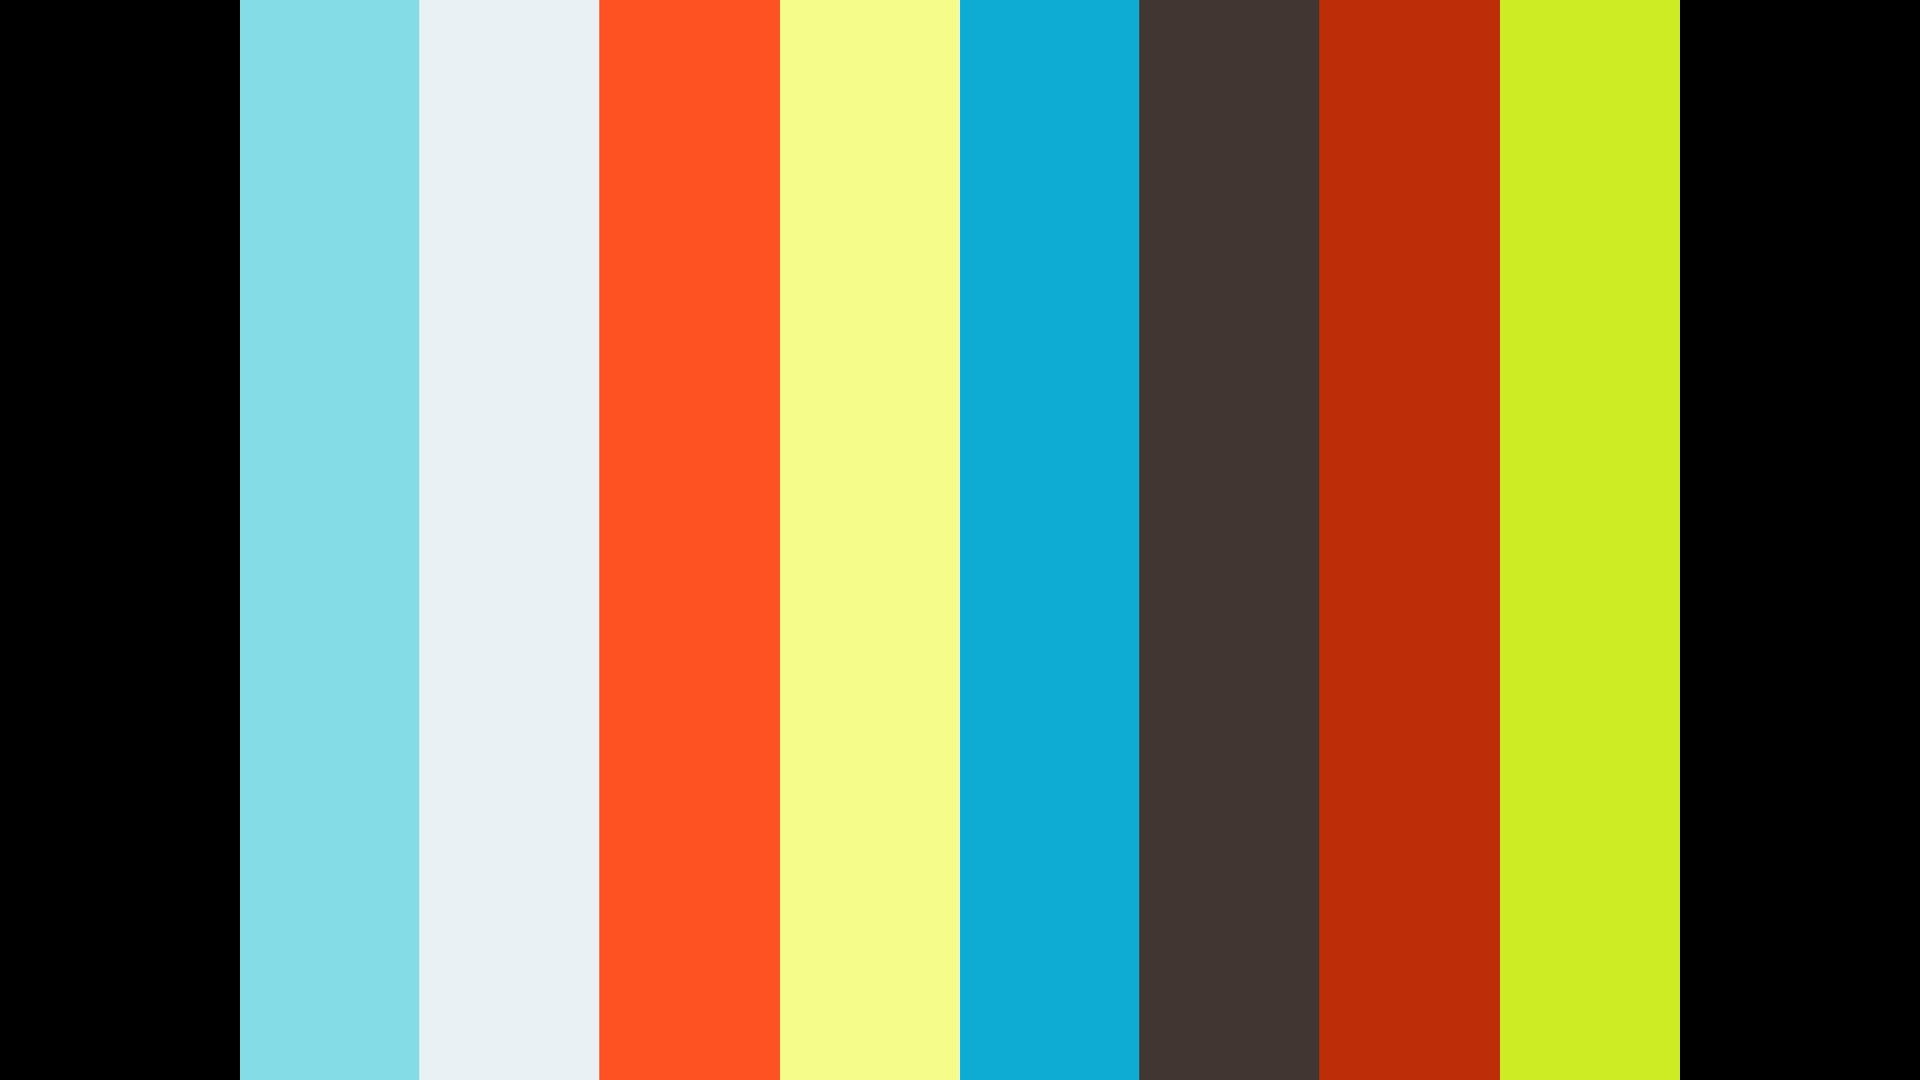 15 Years at Waterbrook